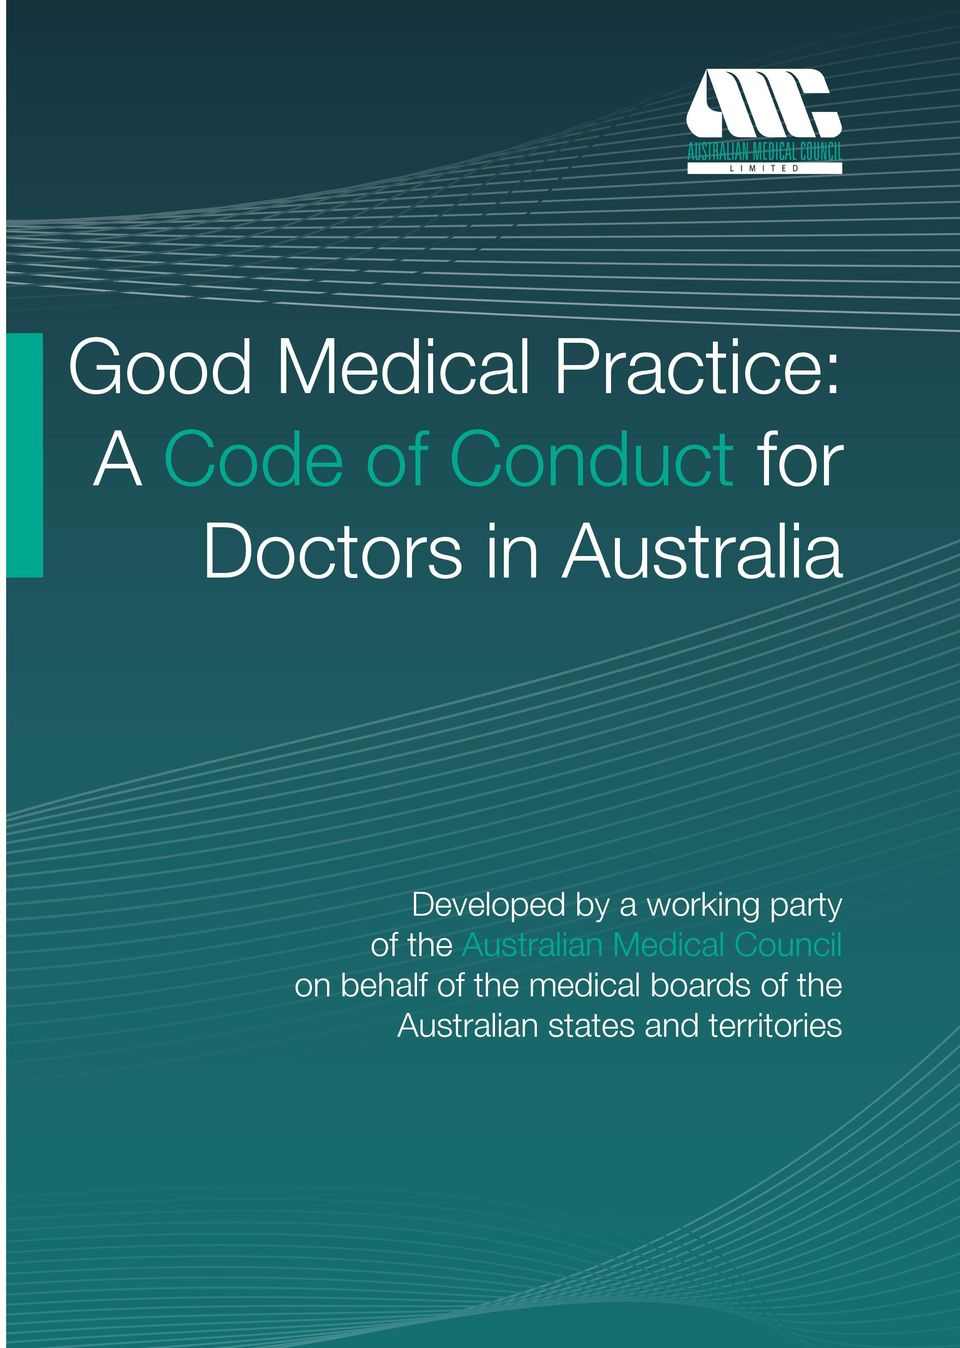 of the Australian Medical Council on behalf of the